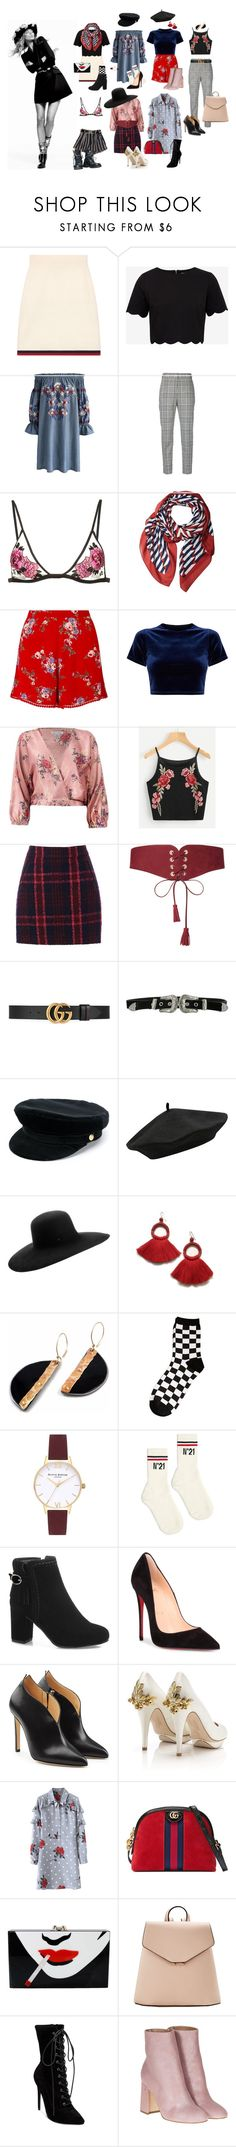 """""""I roll my eyes at you, boy //"""" by monstermo ❤ liked on Polyvore featuring Gucci, Ted Baker, Chicwish, Alexander Wang, Fleur du Mal, Marc Jacobs, Miss Selfridge, Sans Souci, Oasis and Maison Boinet"""